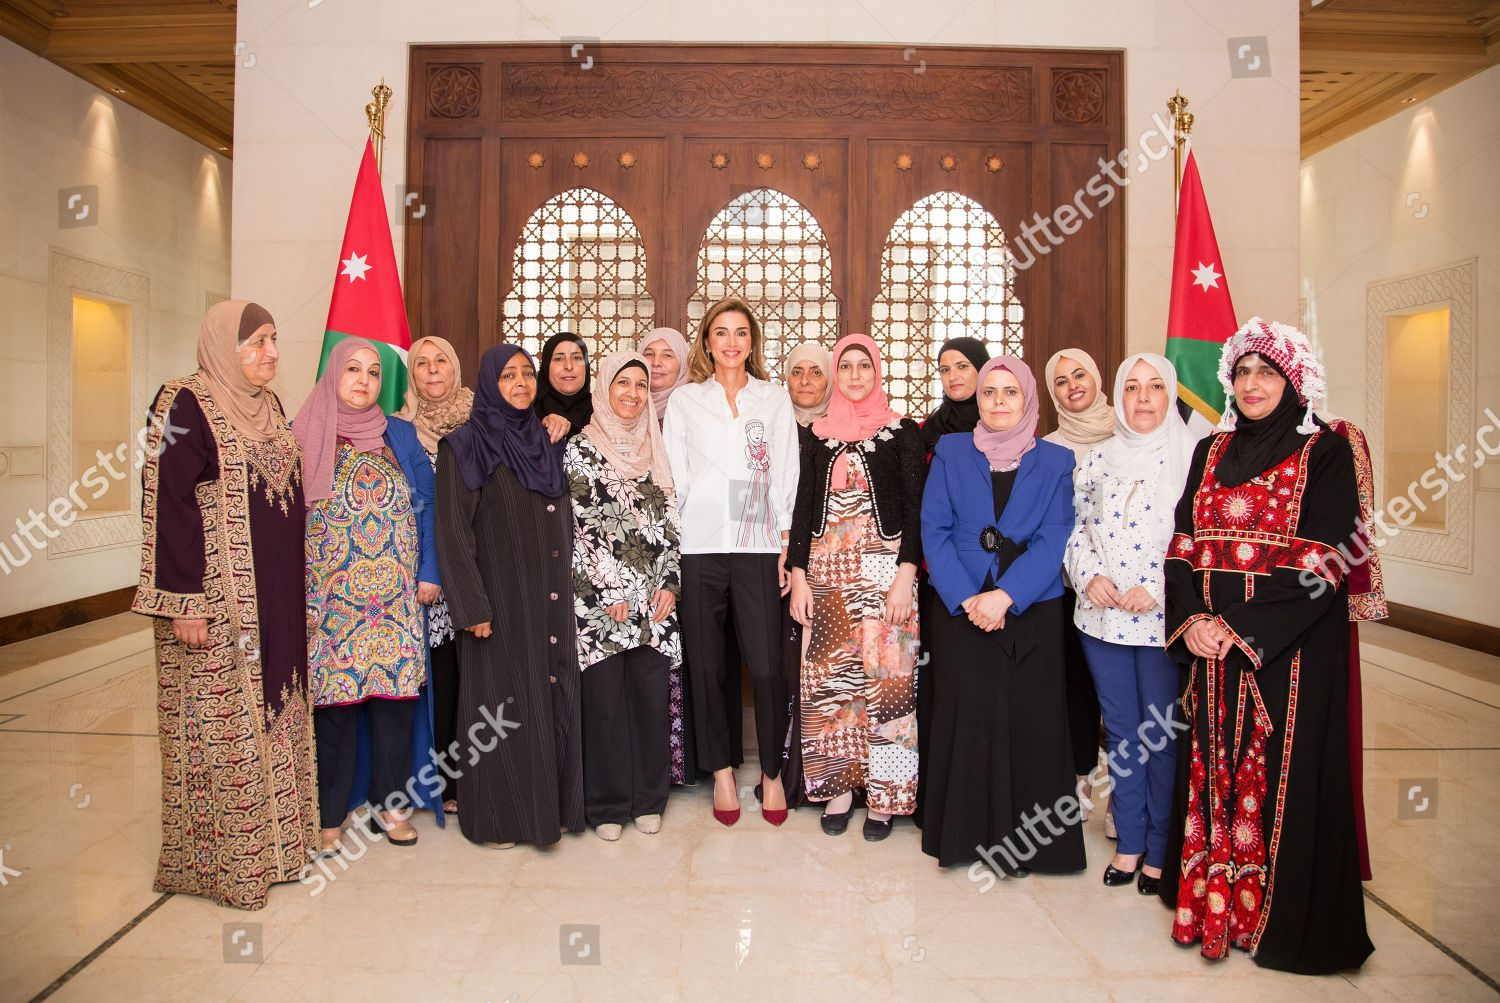 CASA REAL JORDANA - Página 11 Queen-rania-meets-with-female-artisanal-food-producers-amman-jordan-shutterstock-editorial-9855869c